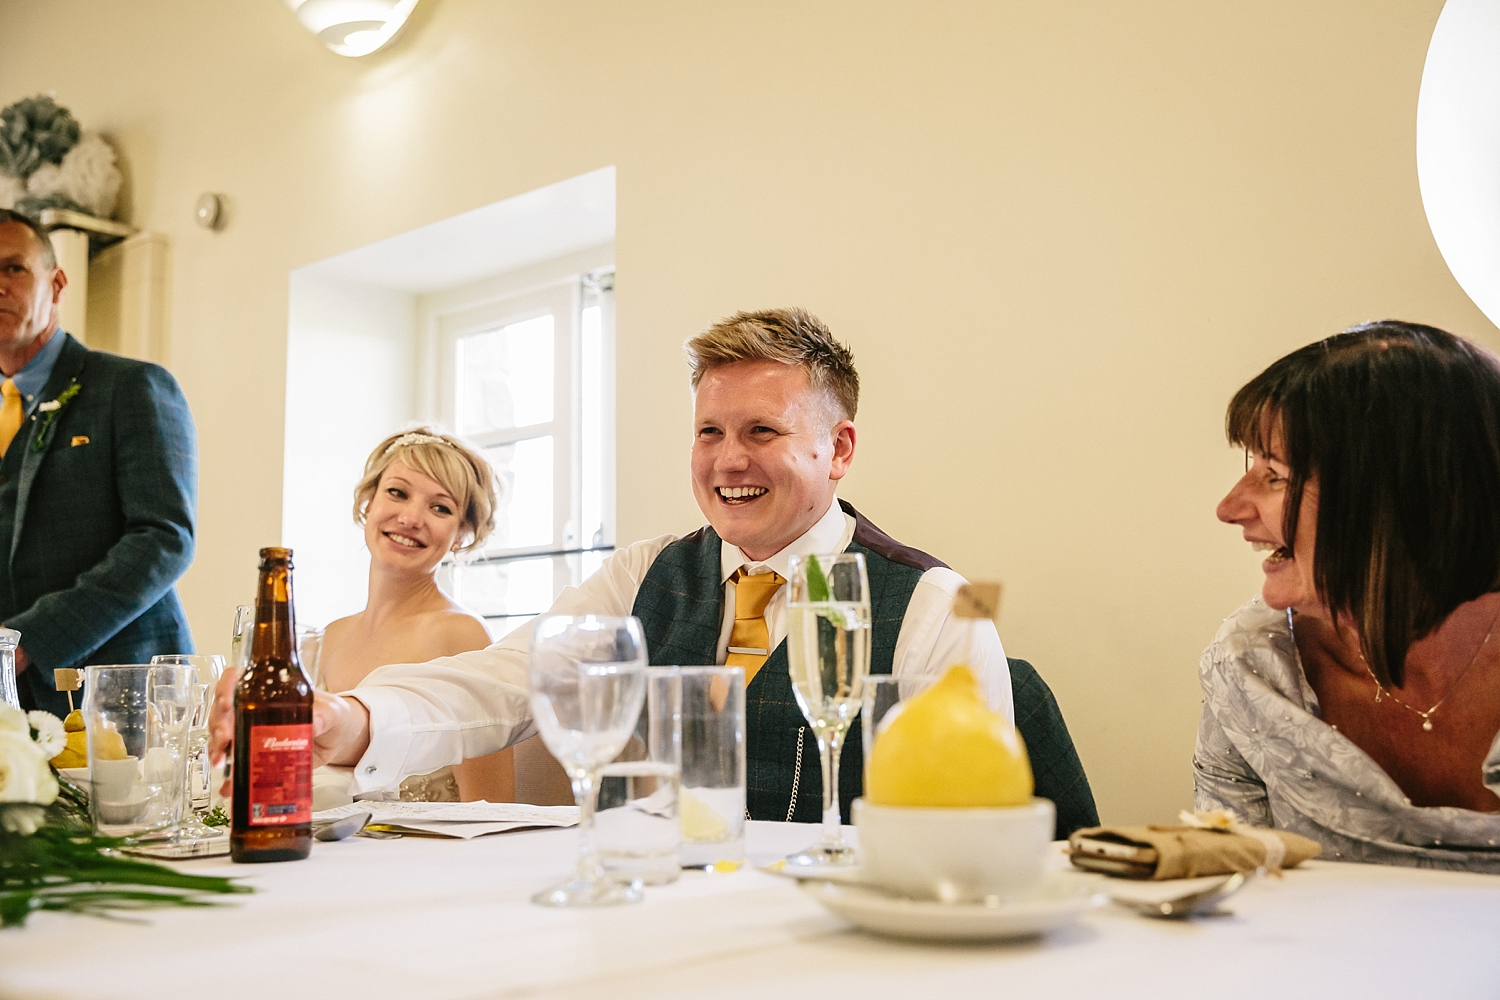 Natlie-Matthew-yorkshire-natural-relaxed-fun-documentary-reportage-candid-wedding-photography-photographer-Derby-Nottingham-Derbyshire-Nottinghamshire-Leicestershire-Lincolnshire-East-Midlands-74.jpg